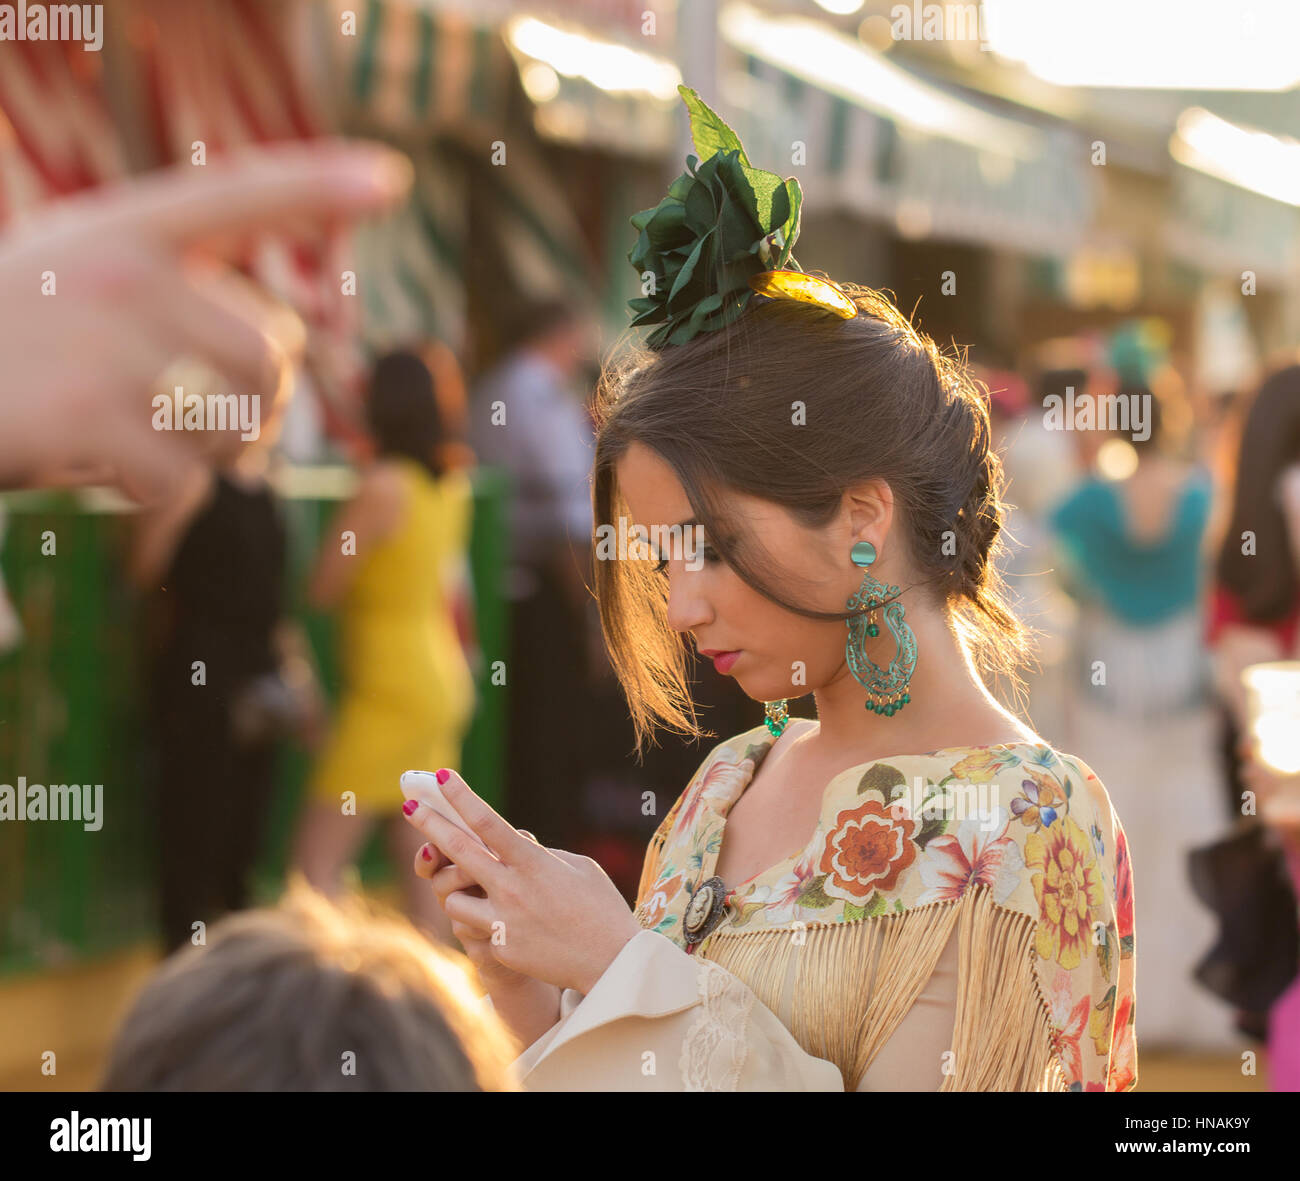 SEVILLE, SPAIN - APR, 25: woman dressed in traditional costume at the Seville's April Fair on April, 25, 2014 - Stock Image